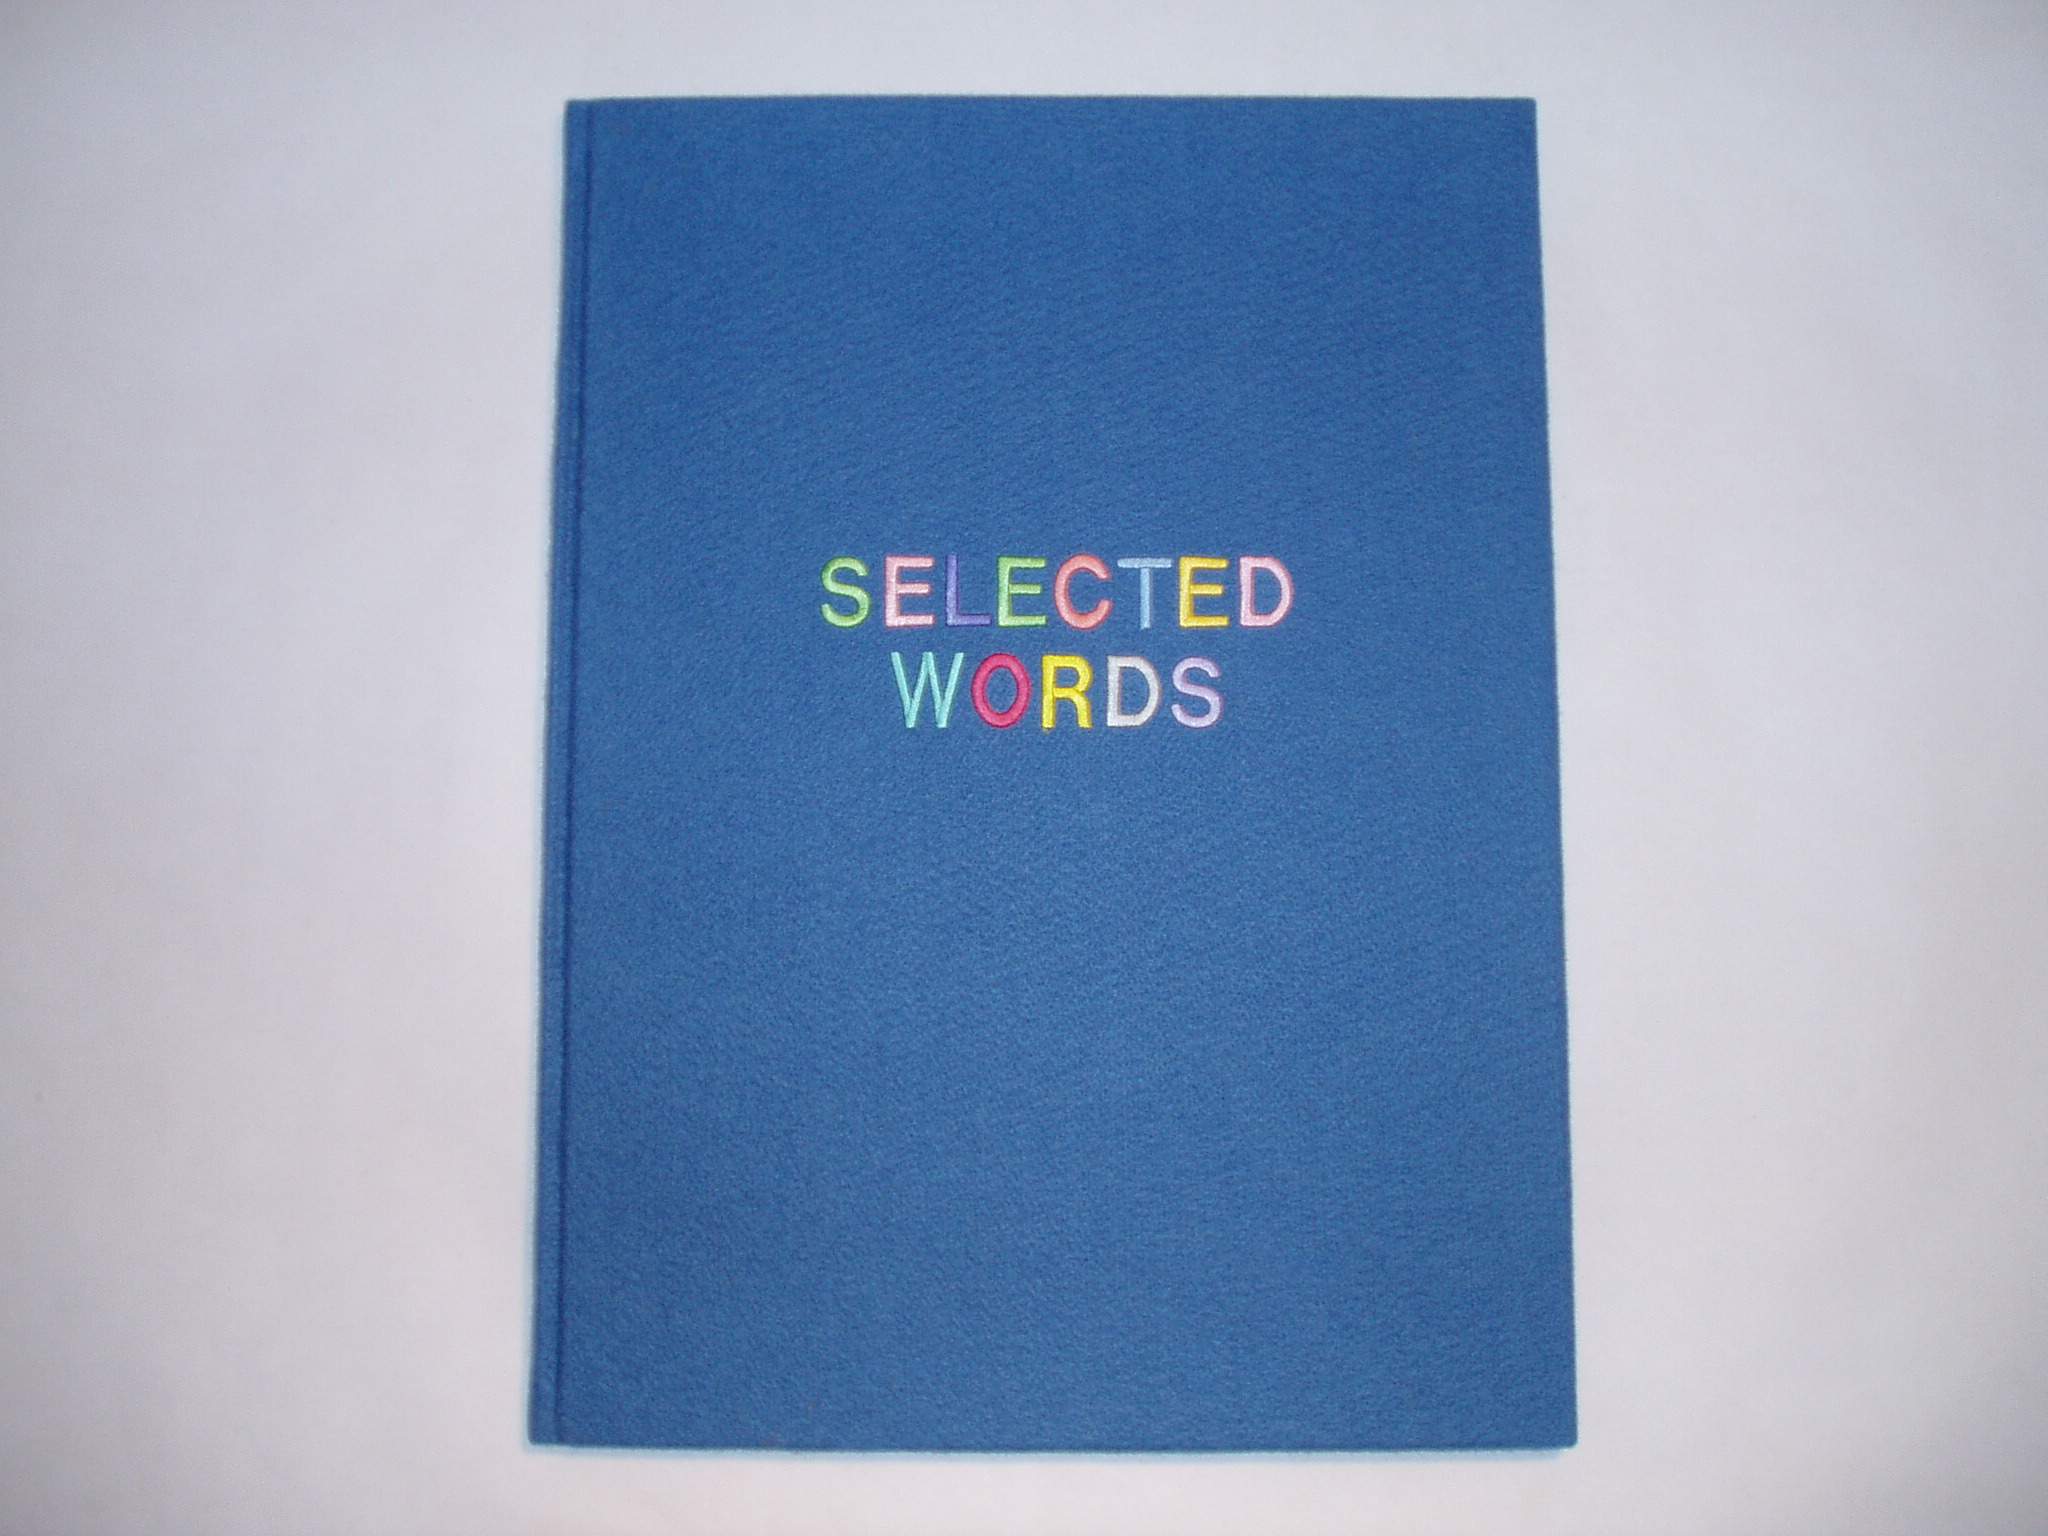 13. Selected Words blue cover.jpg